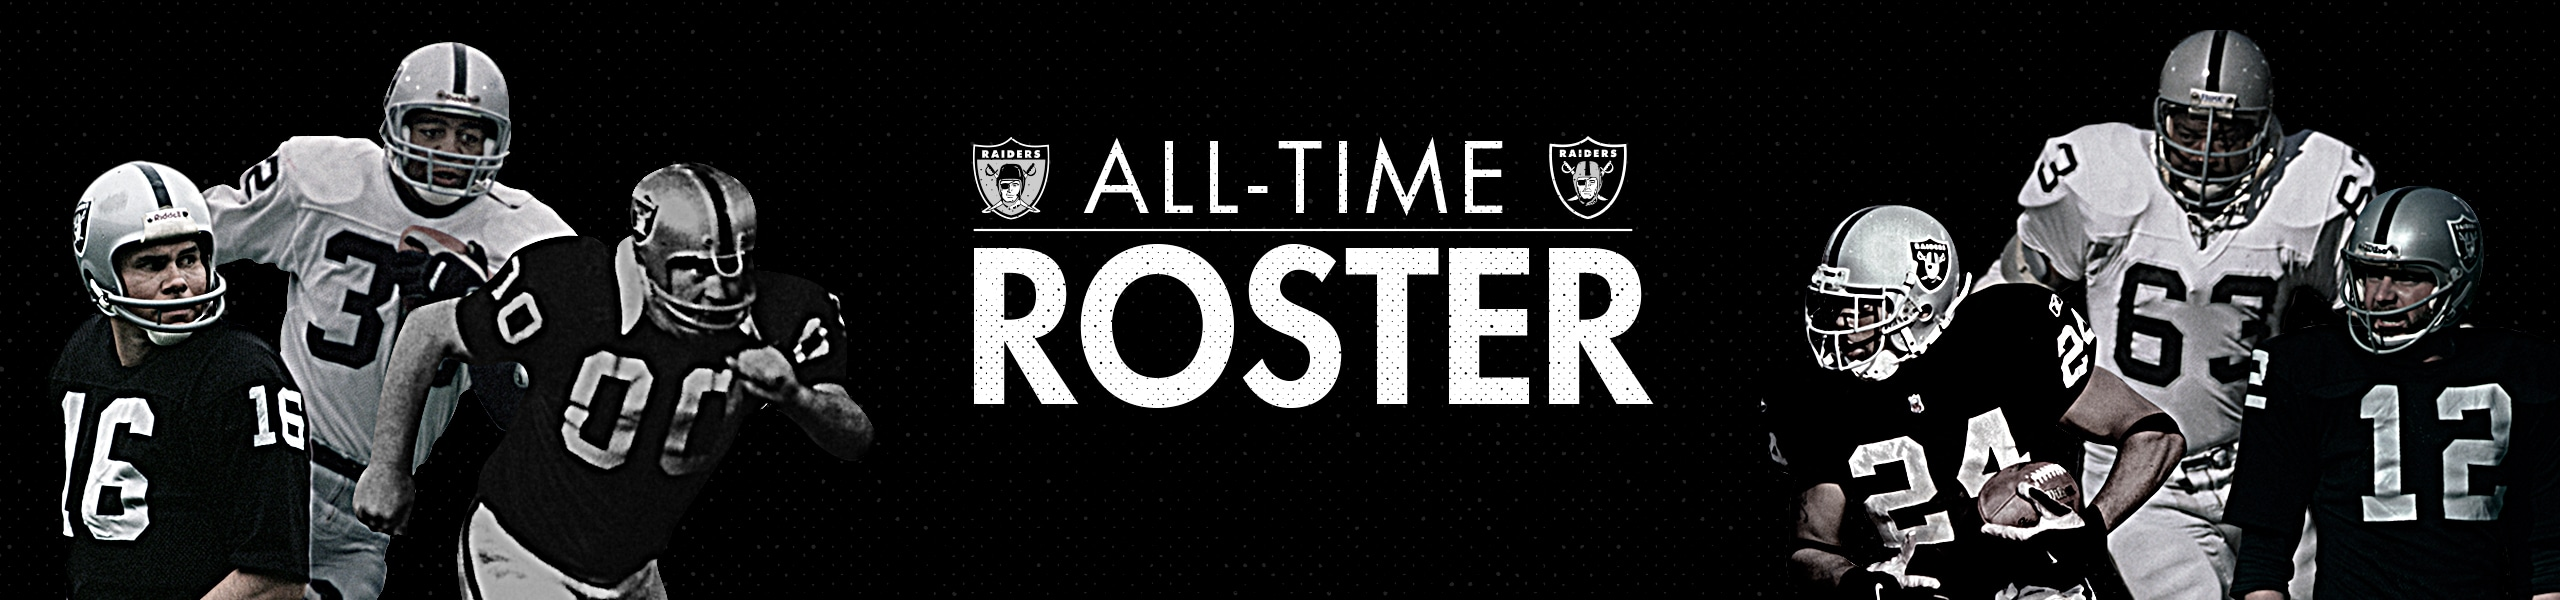 Raiders All-Time Roster